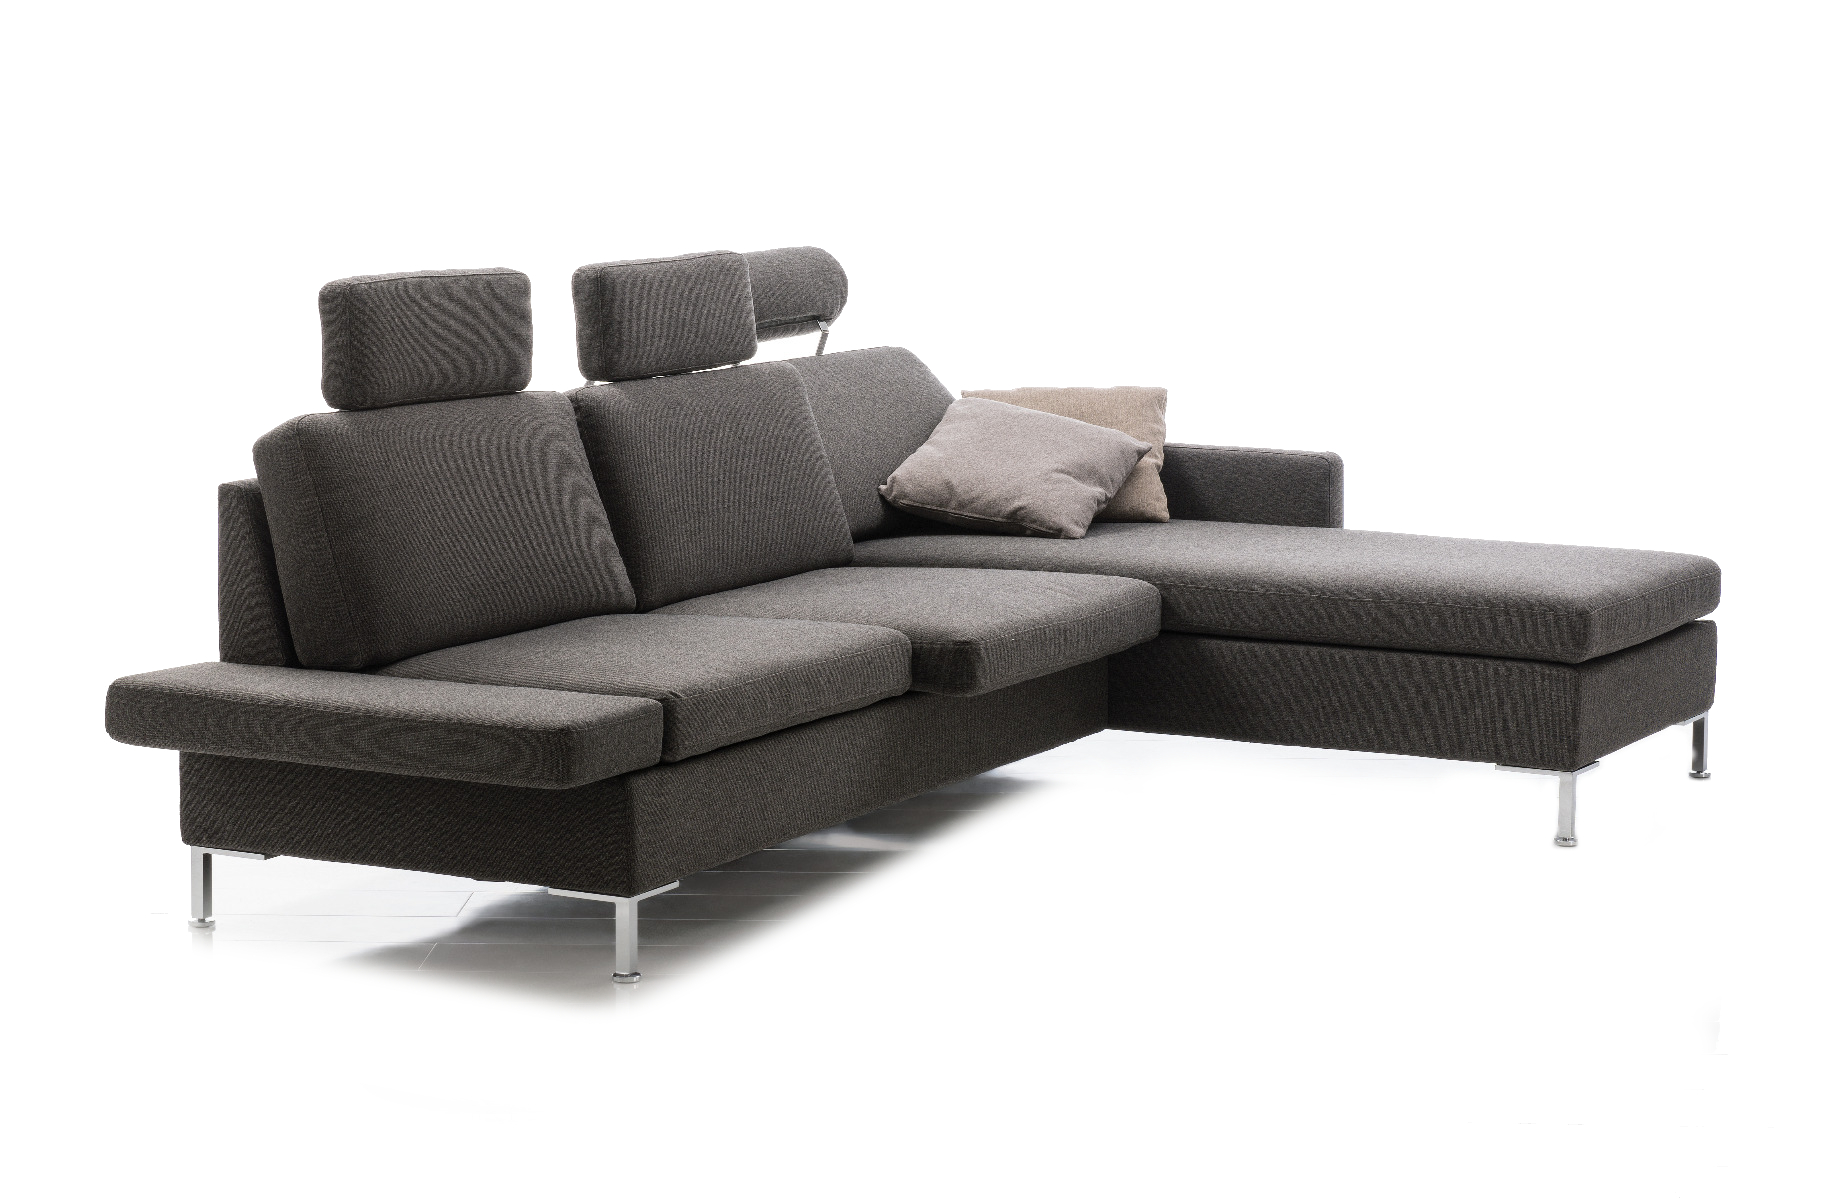 Skonto Ecksofa Alba All In One Ecksofa